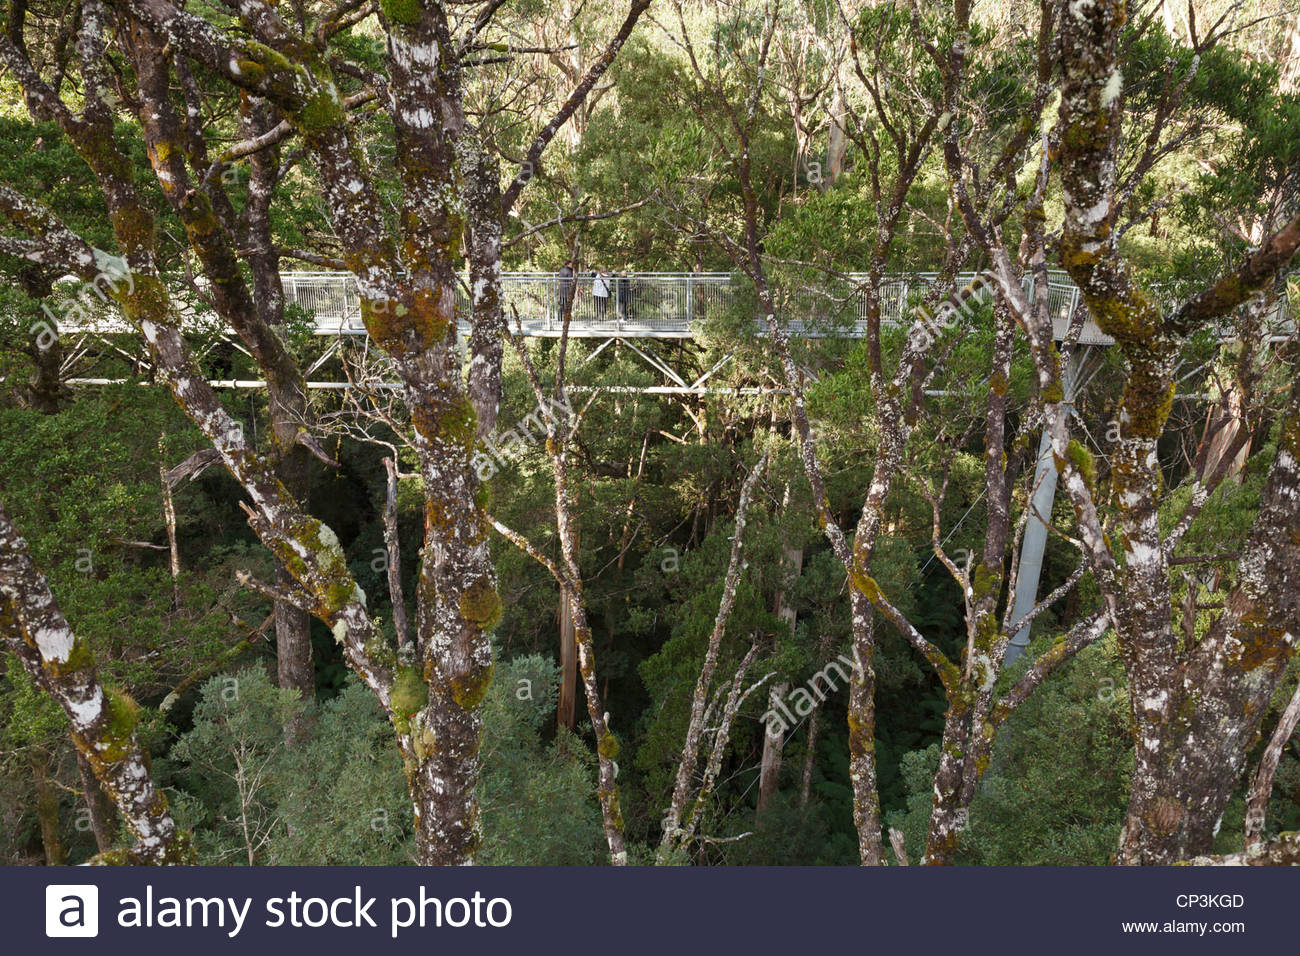 The Otway Fly Tree Top Walk on the Great Ocean Road, Victoria, Australia - Stock Image